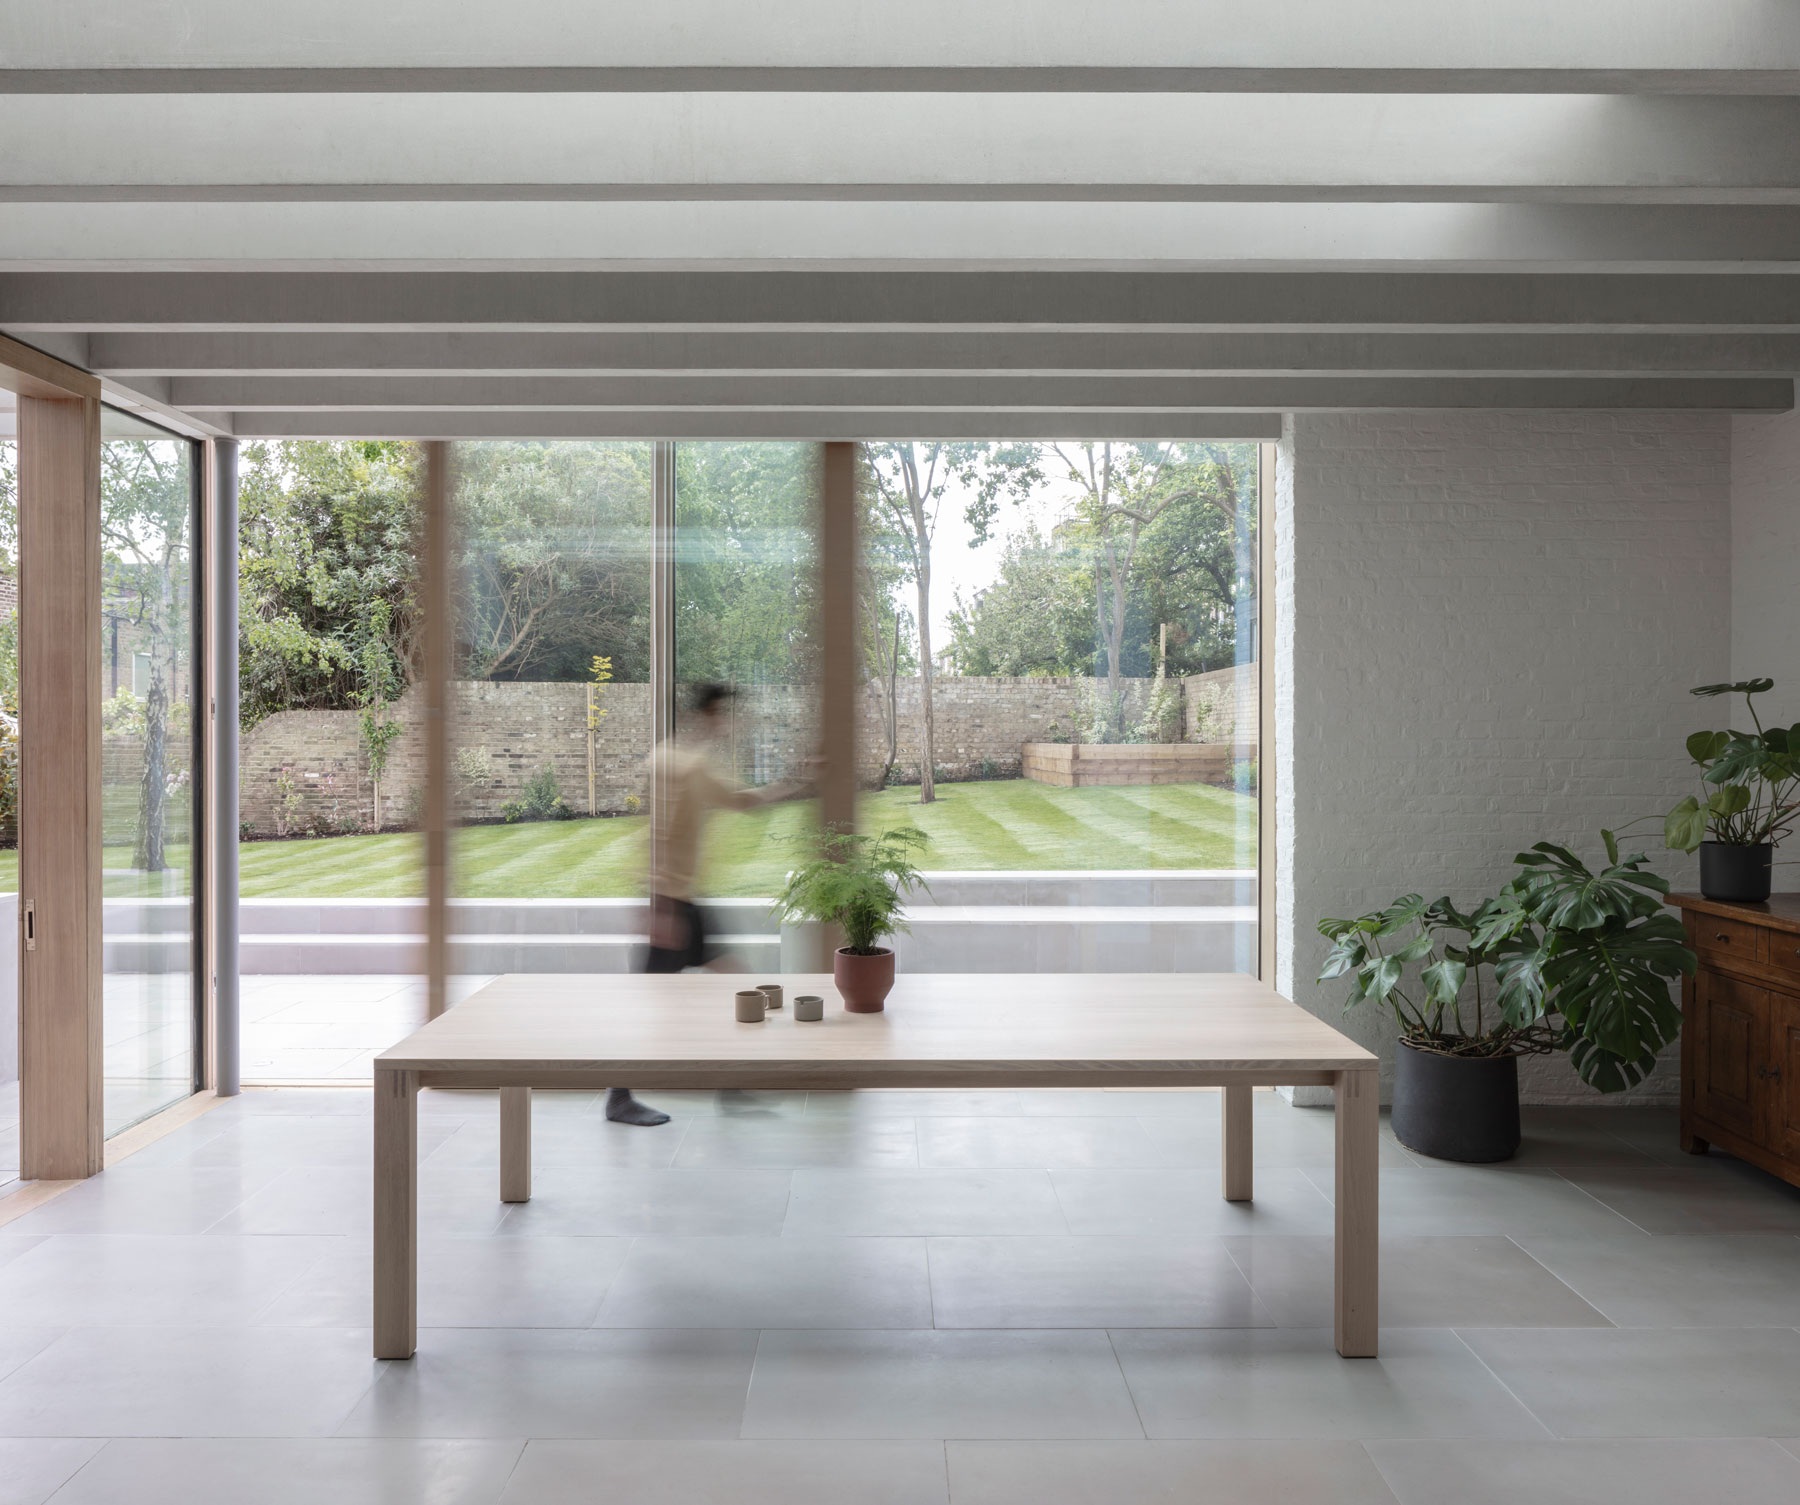 Dartmouth Park house extension architects